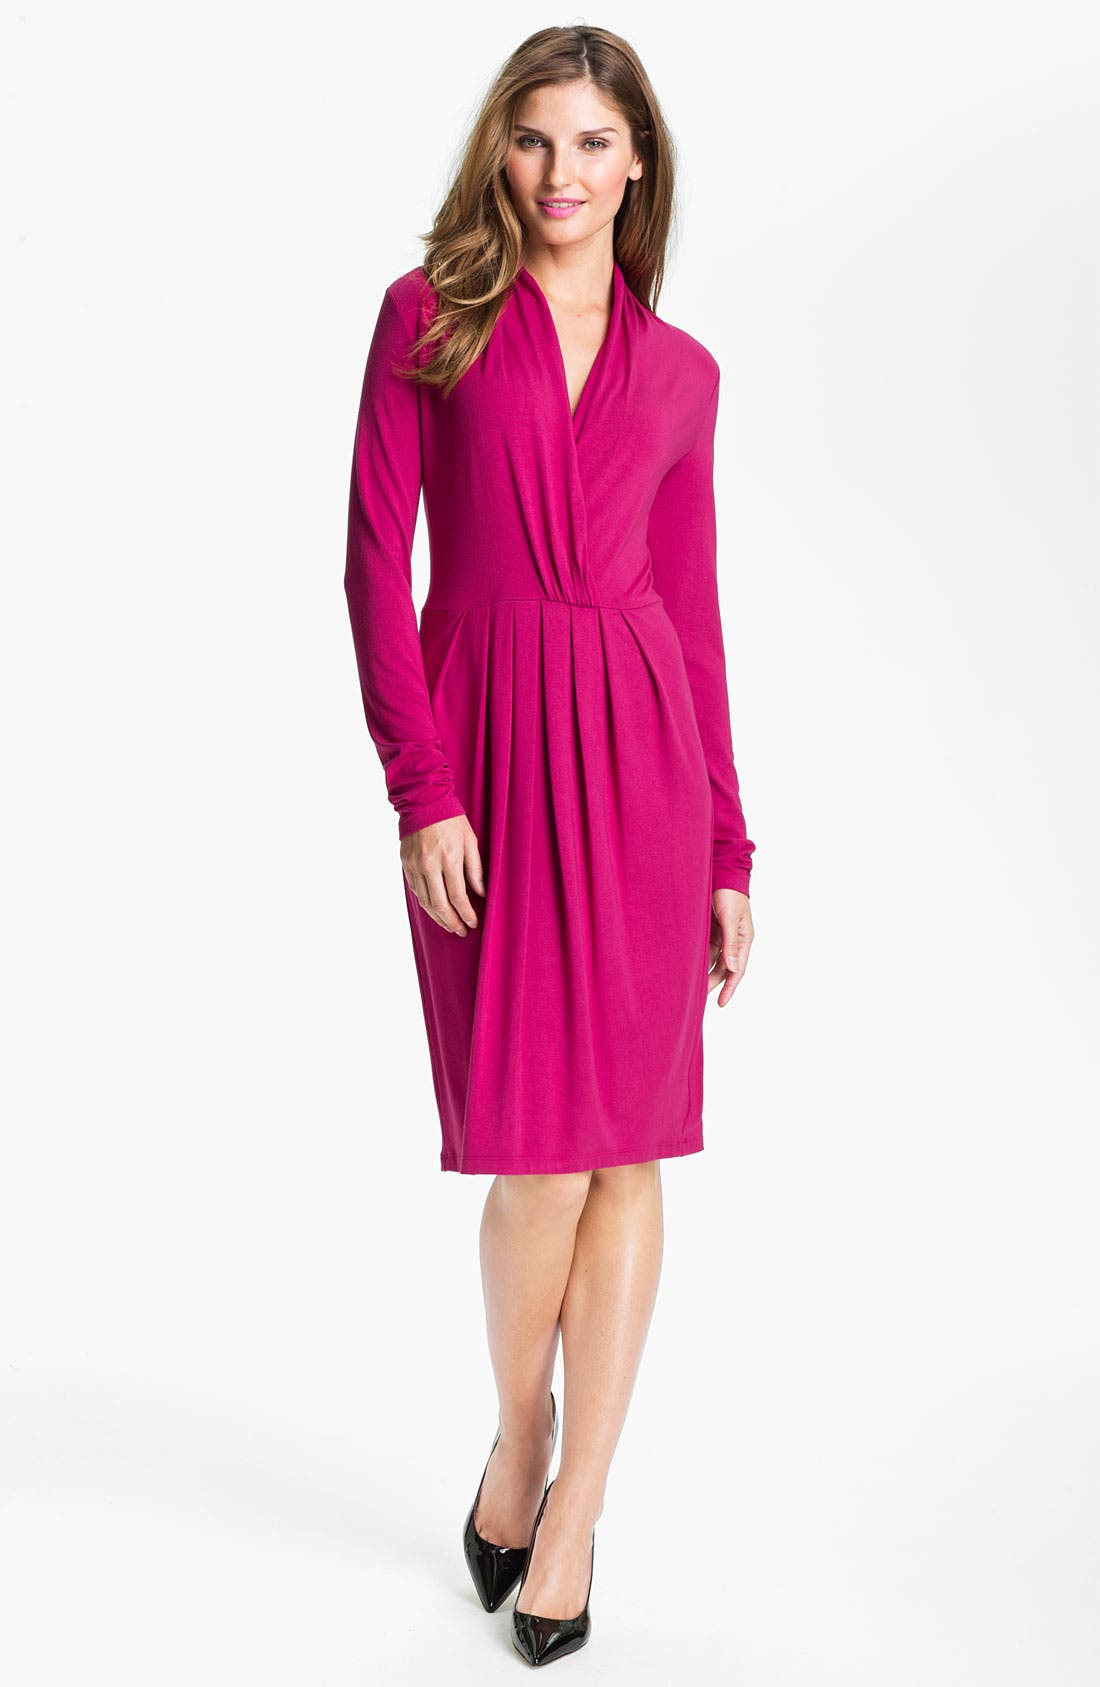 Alternate Image 1 Selected - Karen Kane Surplice Pleated Dress (Online Exclusive)